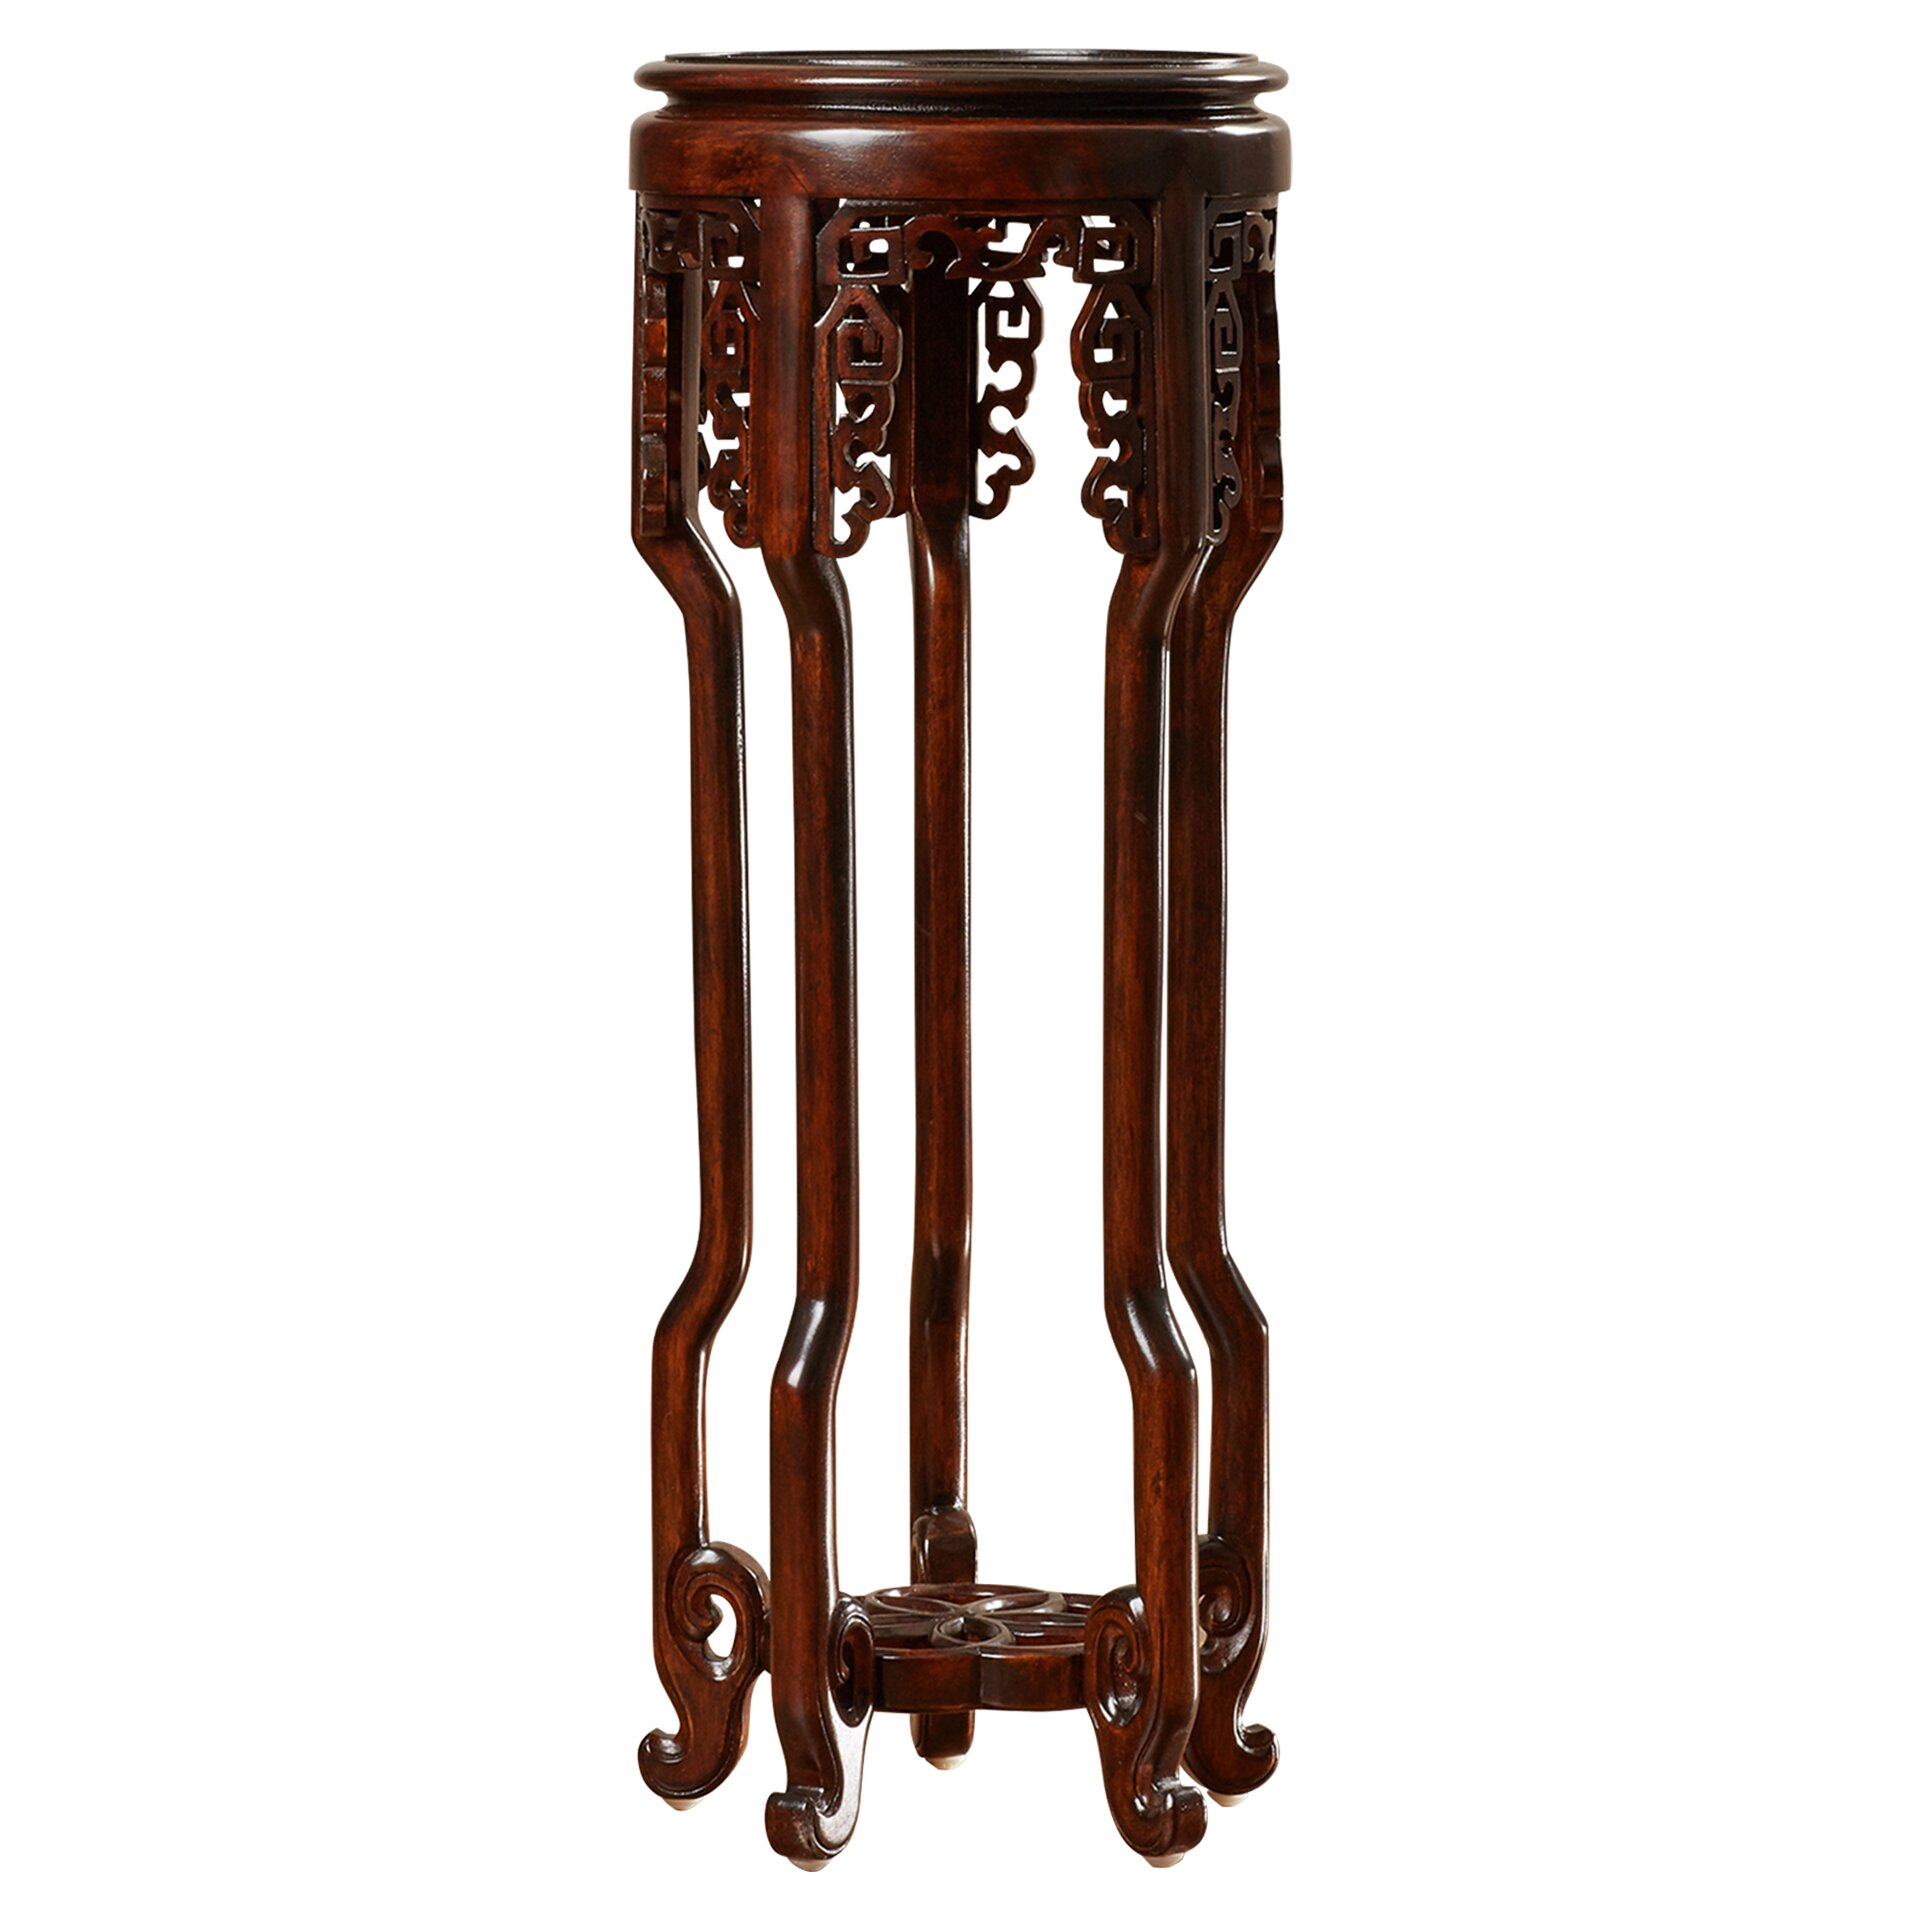 World Menagerie Solid Wood Mahogany Pedestal Plant Stand  : Pedestal Plant Stand WDMG1099 from www.wayfair.com size 1920 x 1920 jpeg 315kB